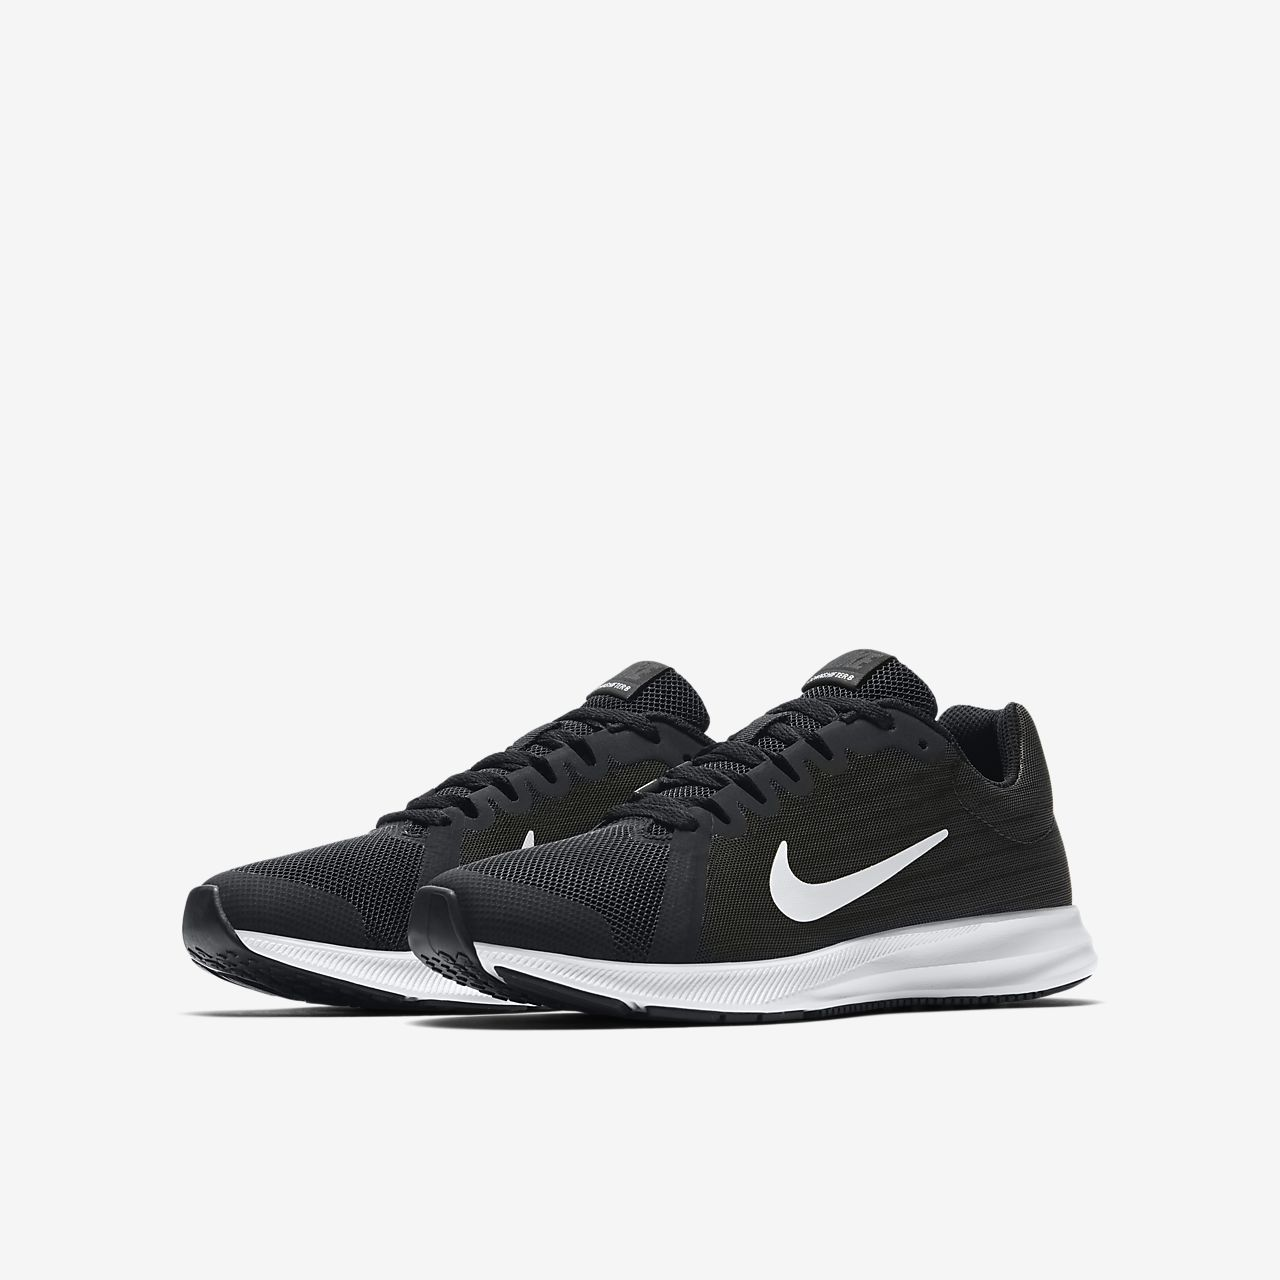 outlet on sale new release pretty cheap Nike Downshifter 8 Older Kids' (Boys') Running Shoe